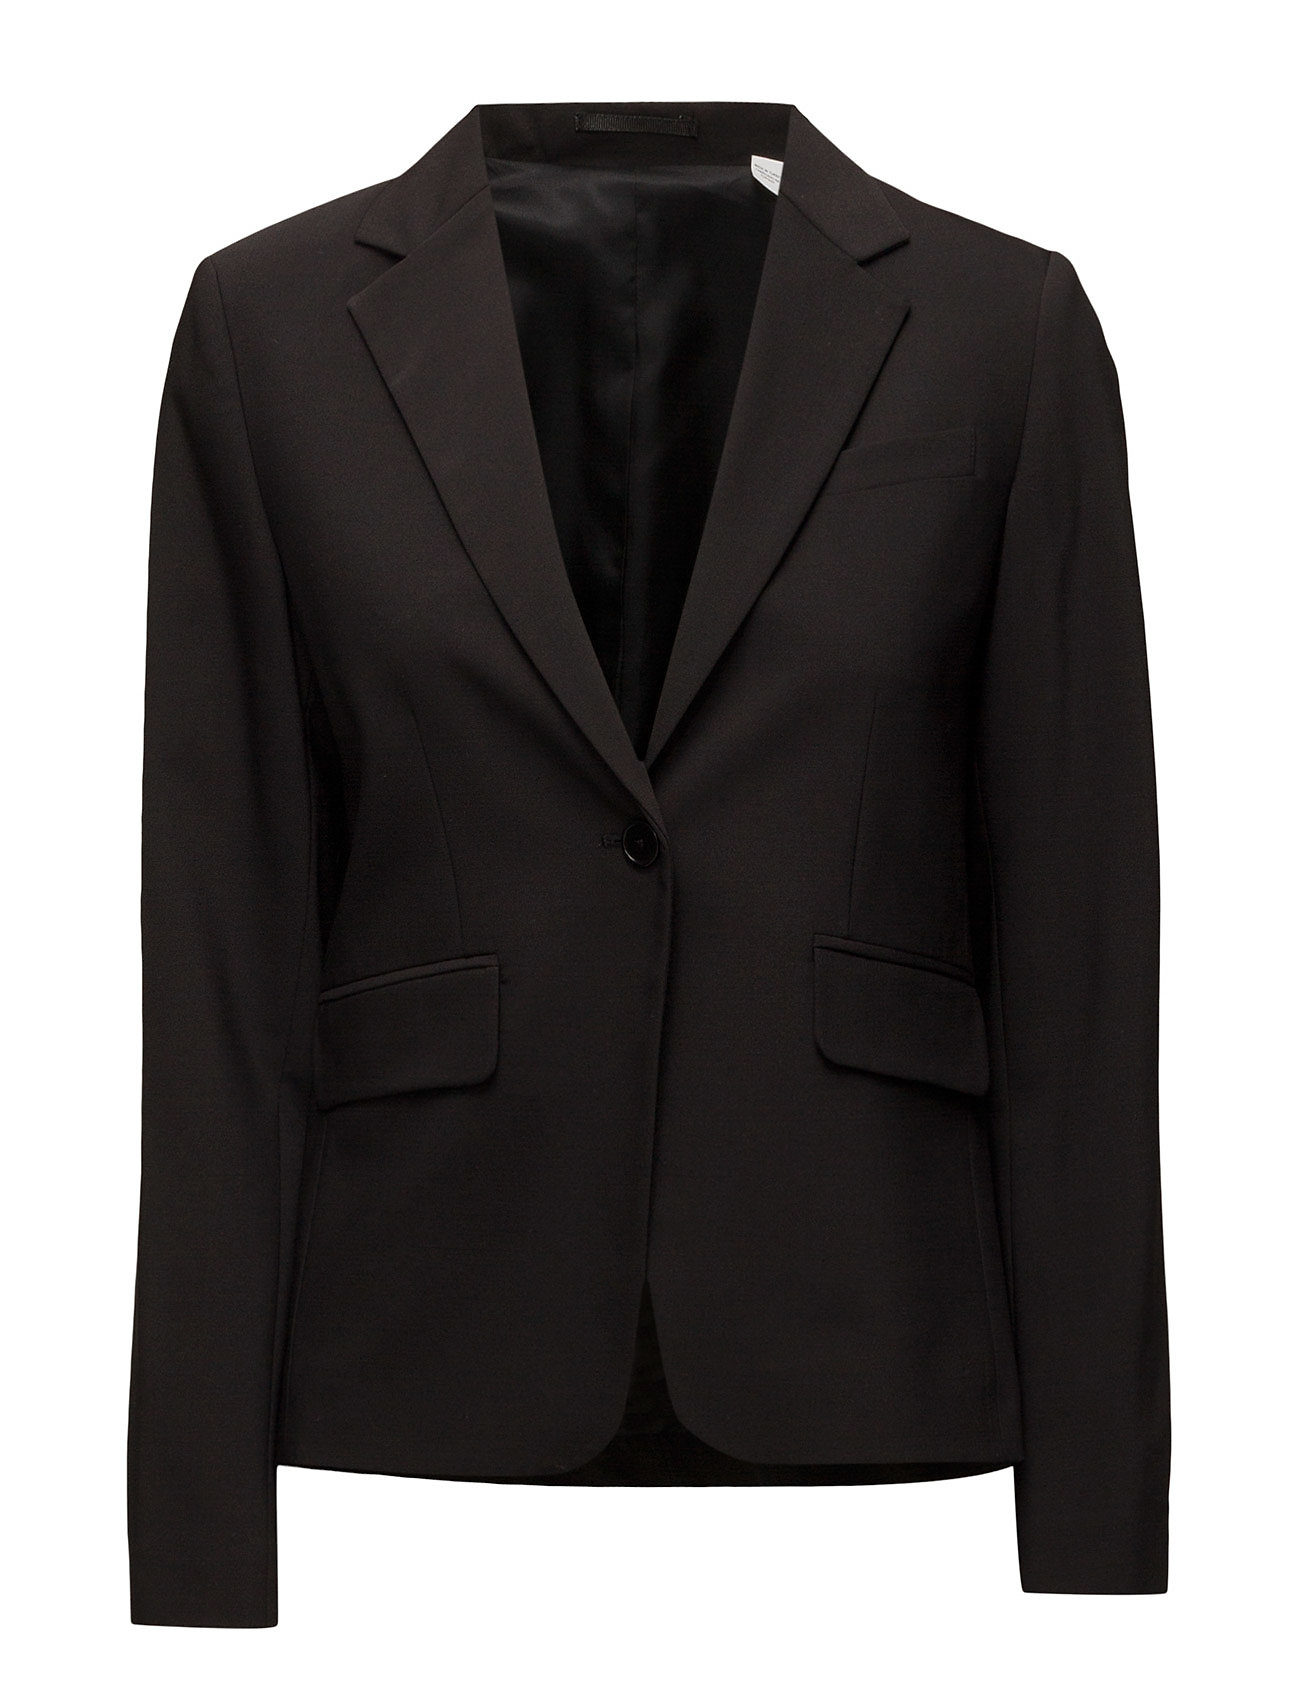 G1. Bi-Stretch Wool Blazer GANT Blazere til Damer i Sort